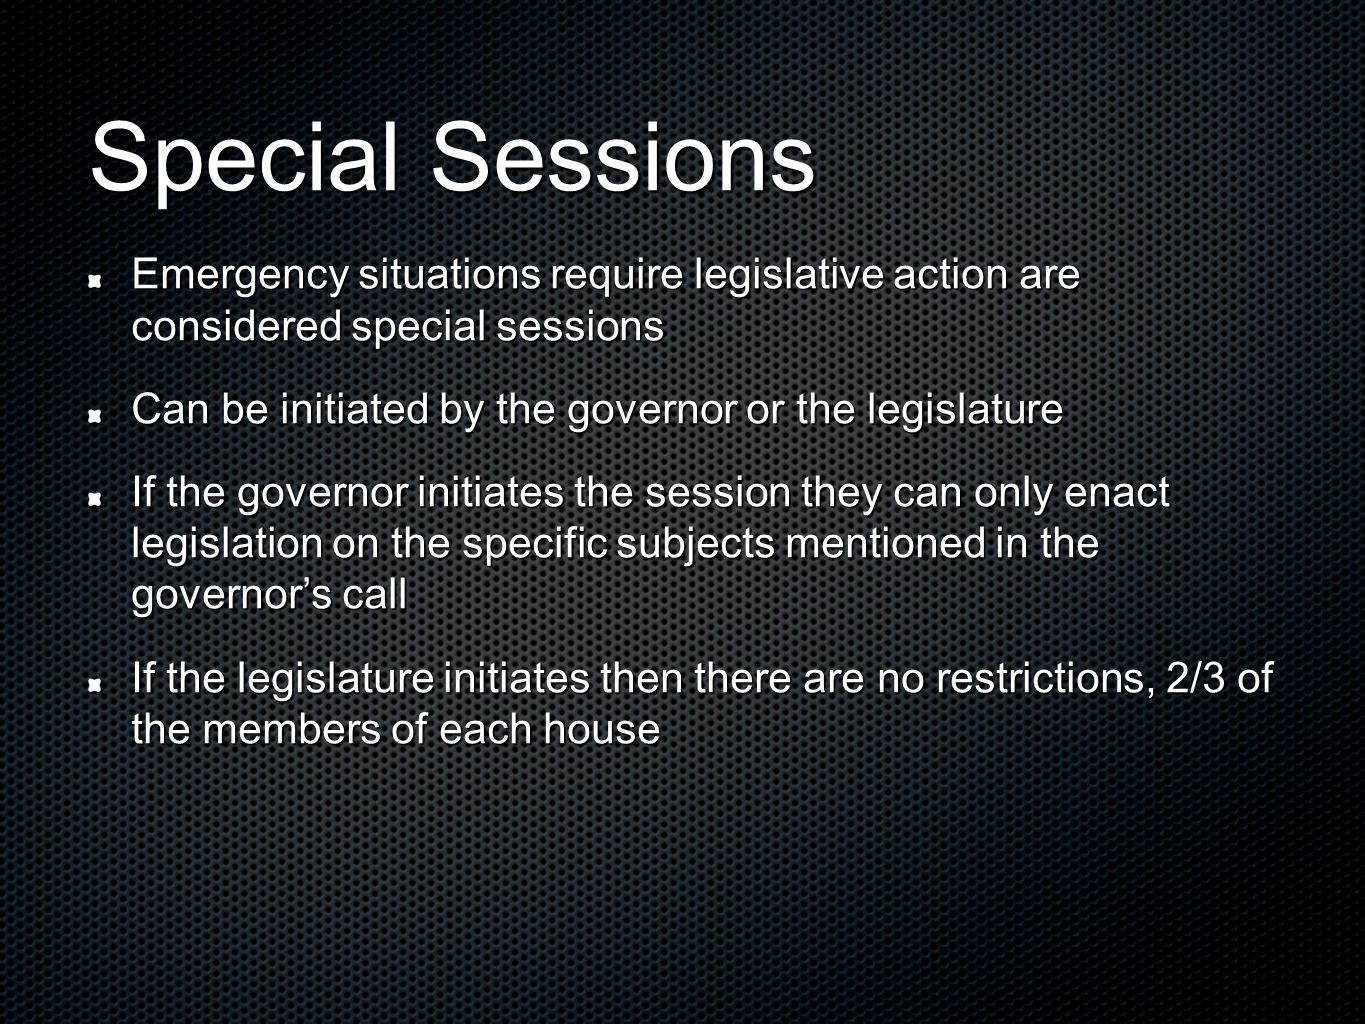 Special Sessions Emergency situations require legislative action are considered special sessions Can be initiated by the governor or the legislature If the governor initiates the session they can only enact legislation on the specific subjects mentioned in the governors call If the legislature initiates then there are no restrictions, 2/3 of the members of each house